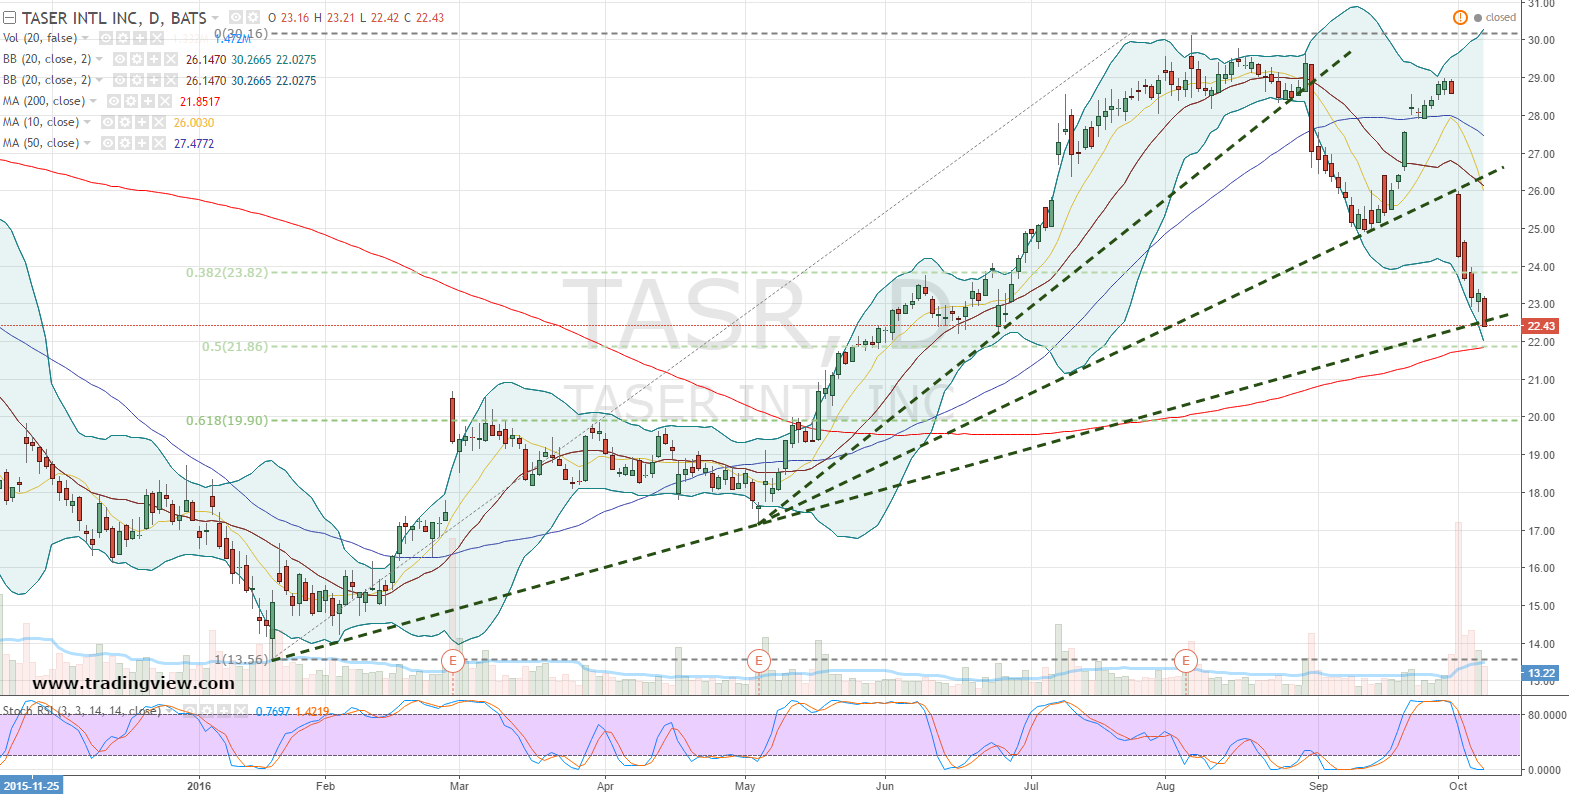 Click To Enlarge Taser Shares Havee Under Fire Technically, But Don't  Take The Price Action For A Stock That's Dead On Arrival